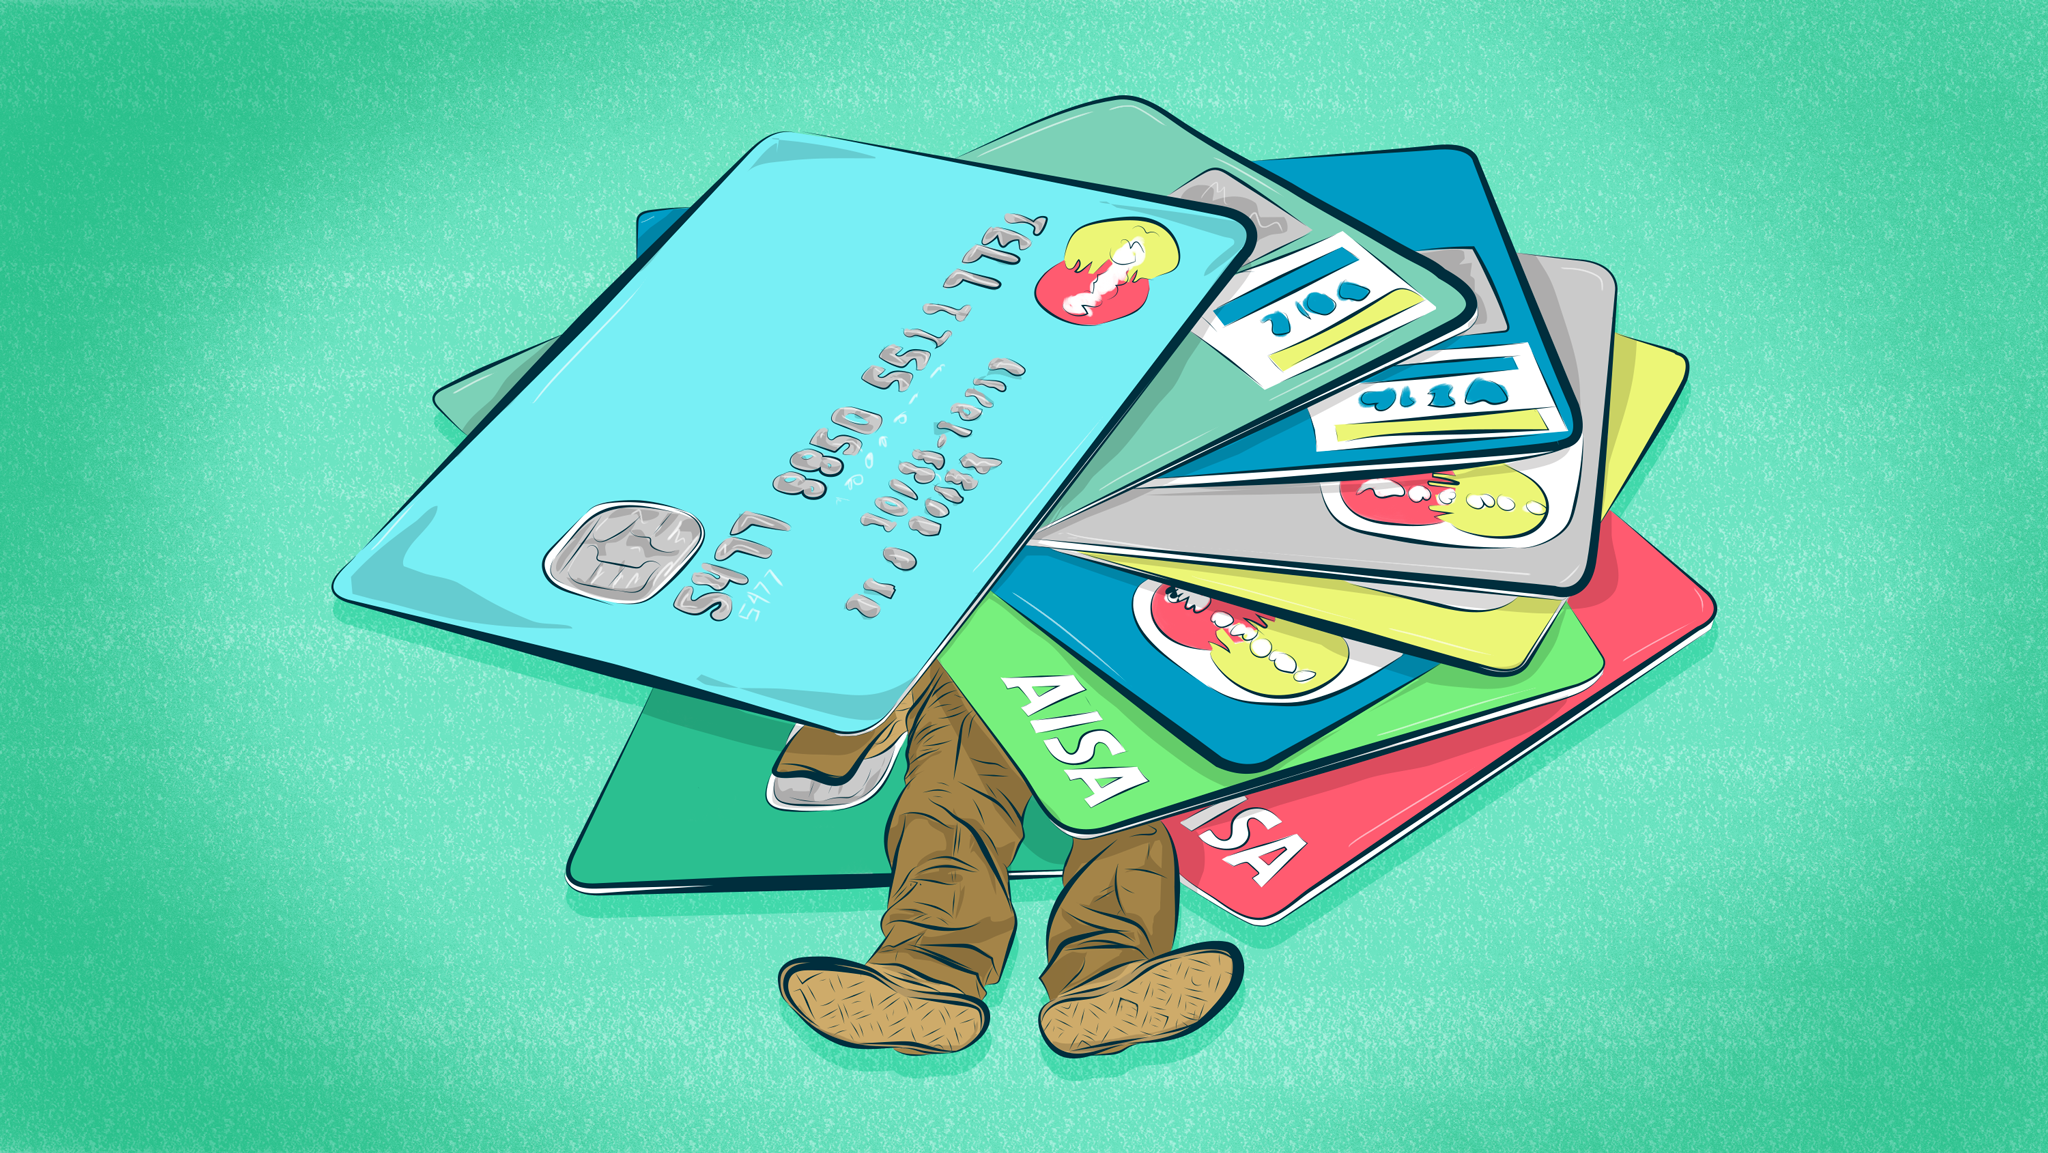 credit-cards debt debt-payoff editors-picks fine-print personal-finance saving shopping twocents